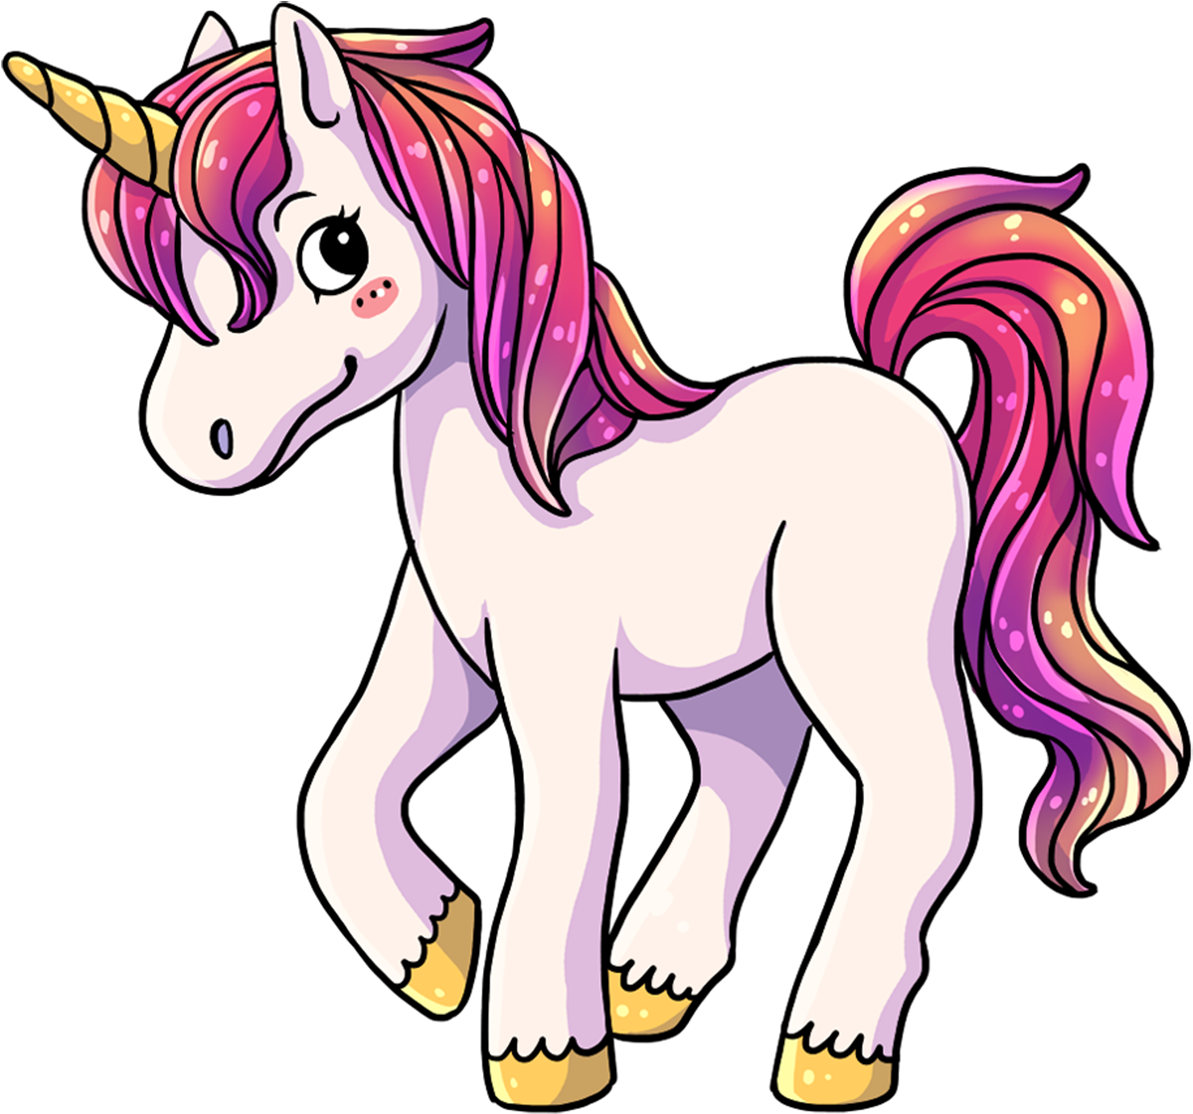 This Lovely Cartoon Unicorn Clip Art.